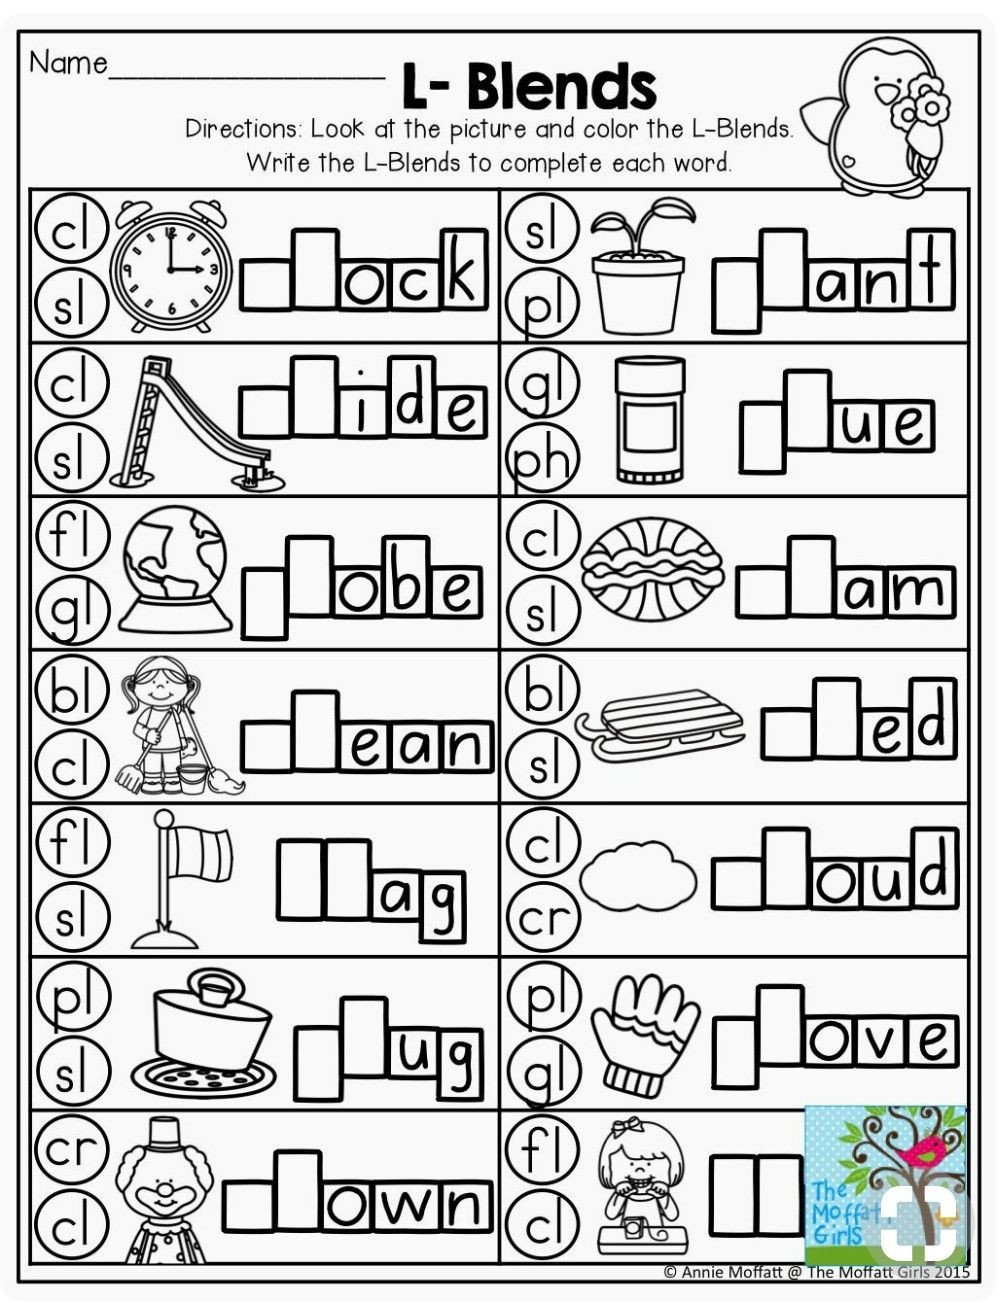 Blends Worksheet for First Grade Worksheet Awesome 1st Grade Phonicsrksheets Image Ideas